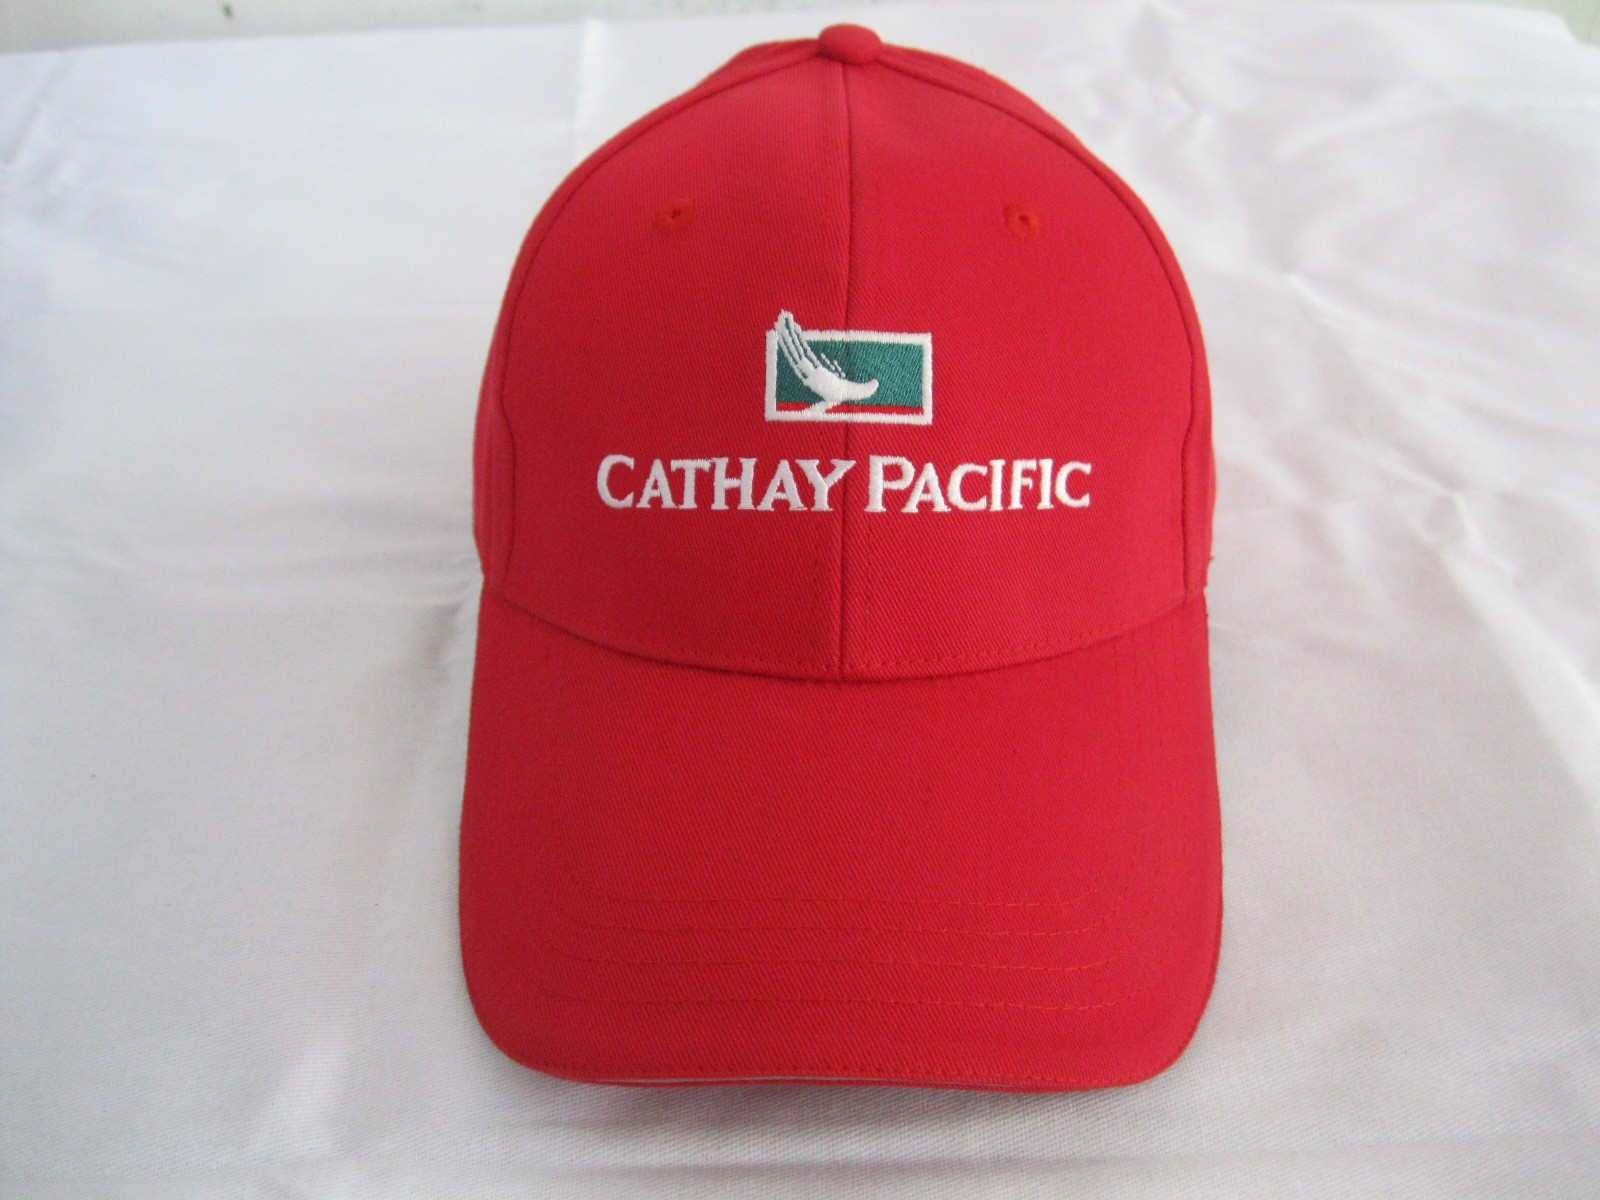 6c1b71e4925 customize promotional cap;personalized 6-panel baseball cap with embroidery;wholesale  cheap sports caps hats